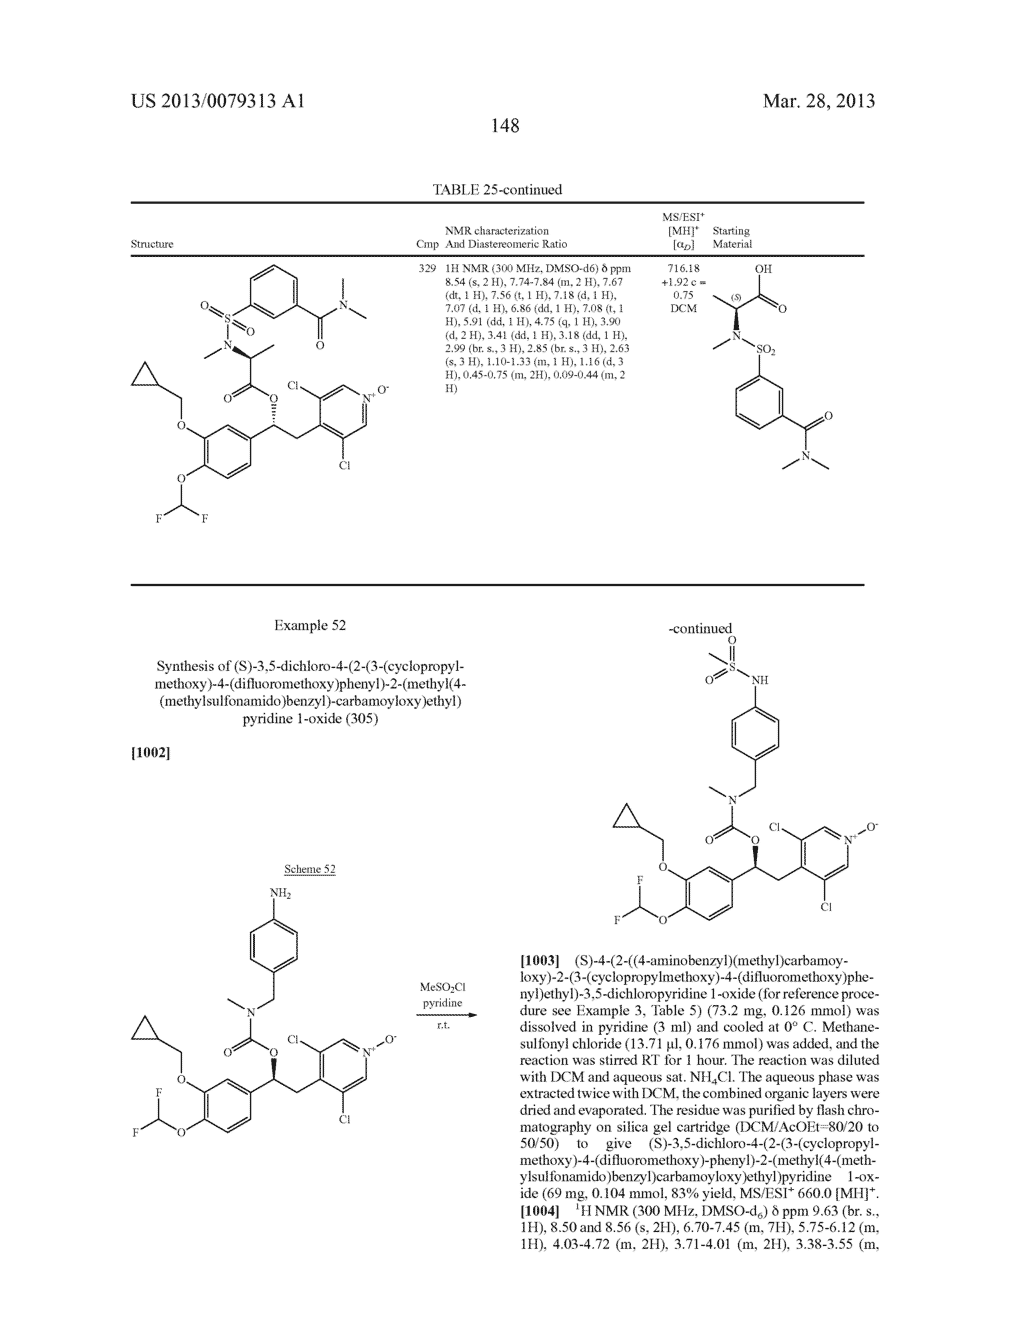 DERIVATIVES OF 1-PHENYL-2-PYRIDINYL ALKYL ALCOHOLS AS PHOSPHODIESTERASE     INHIBITORS - diagram, schematic, and image 149